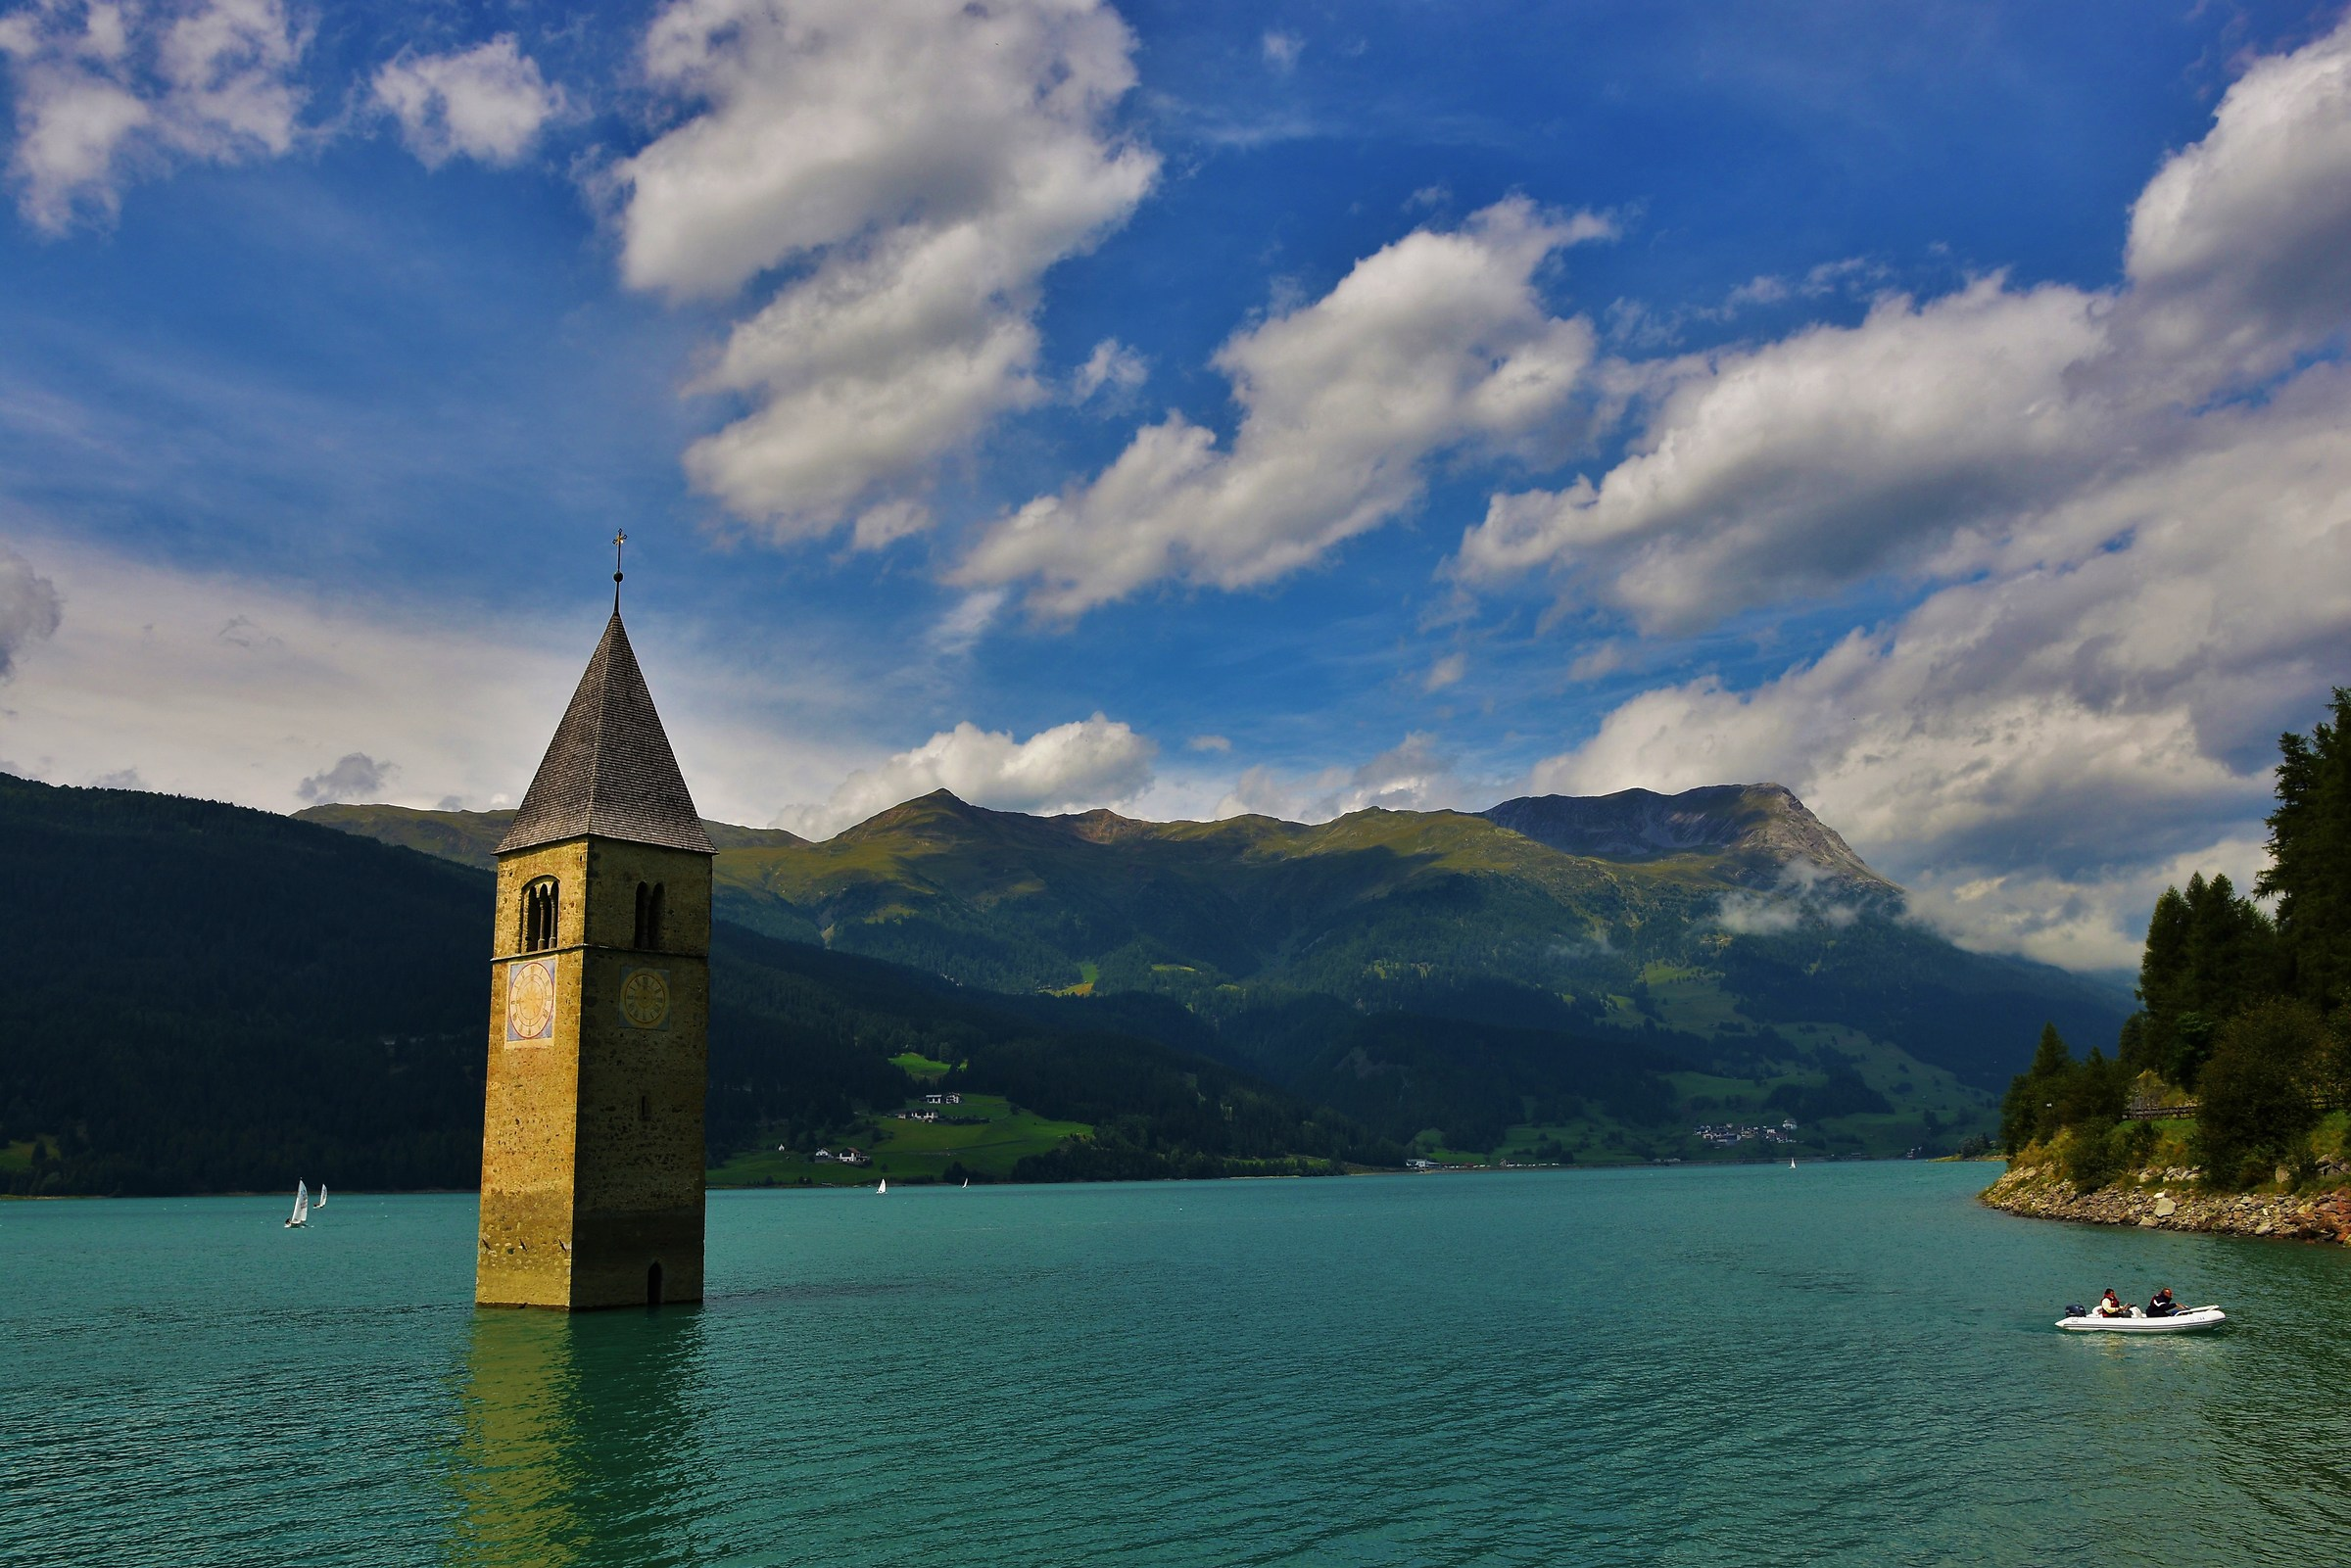 Curon Venosta (the submerged bell tower)....